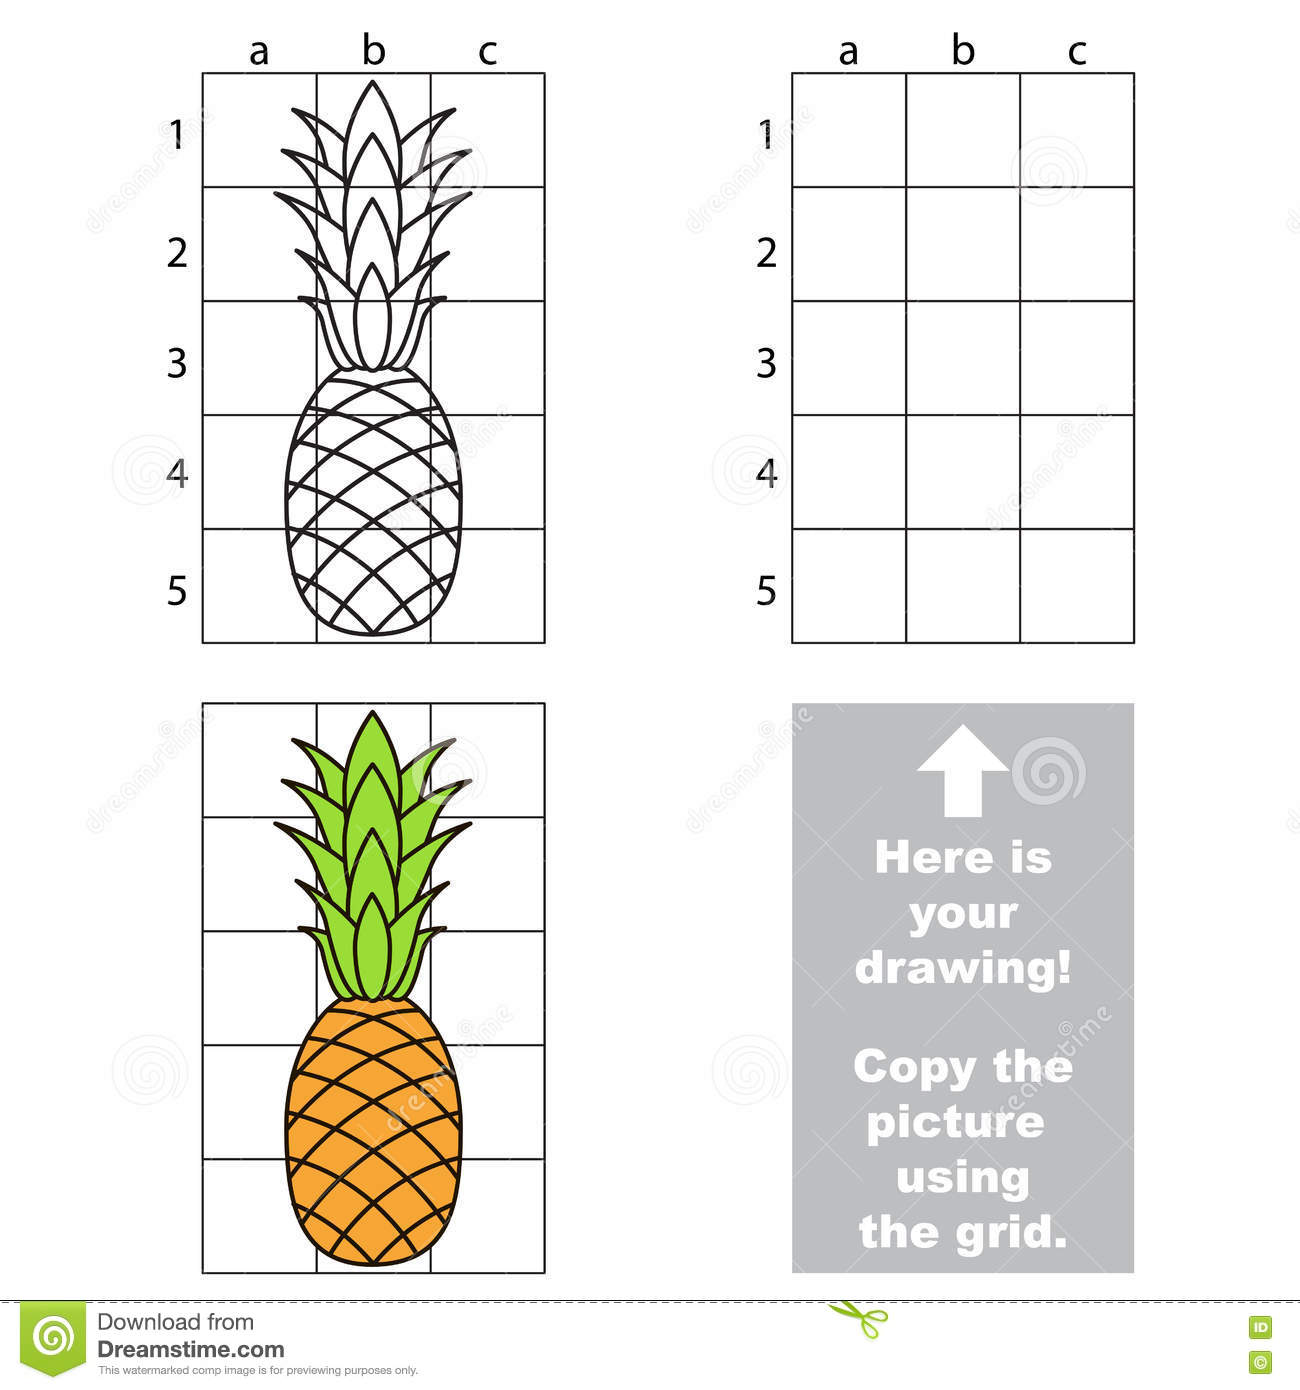 Copy The Image Using Grid Pineapple Stock Vector Illustration Of